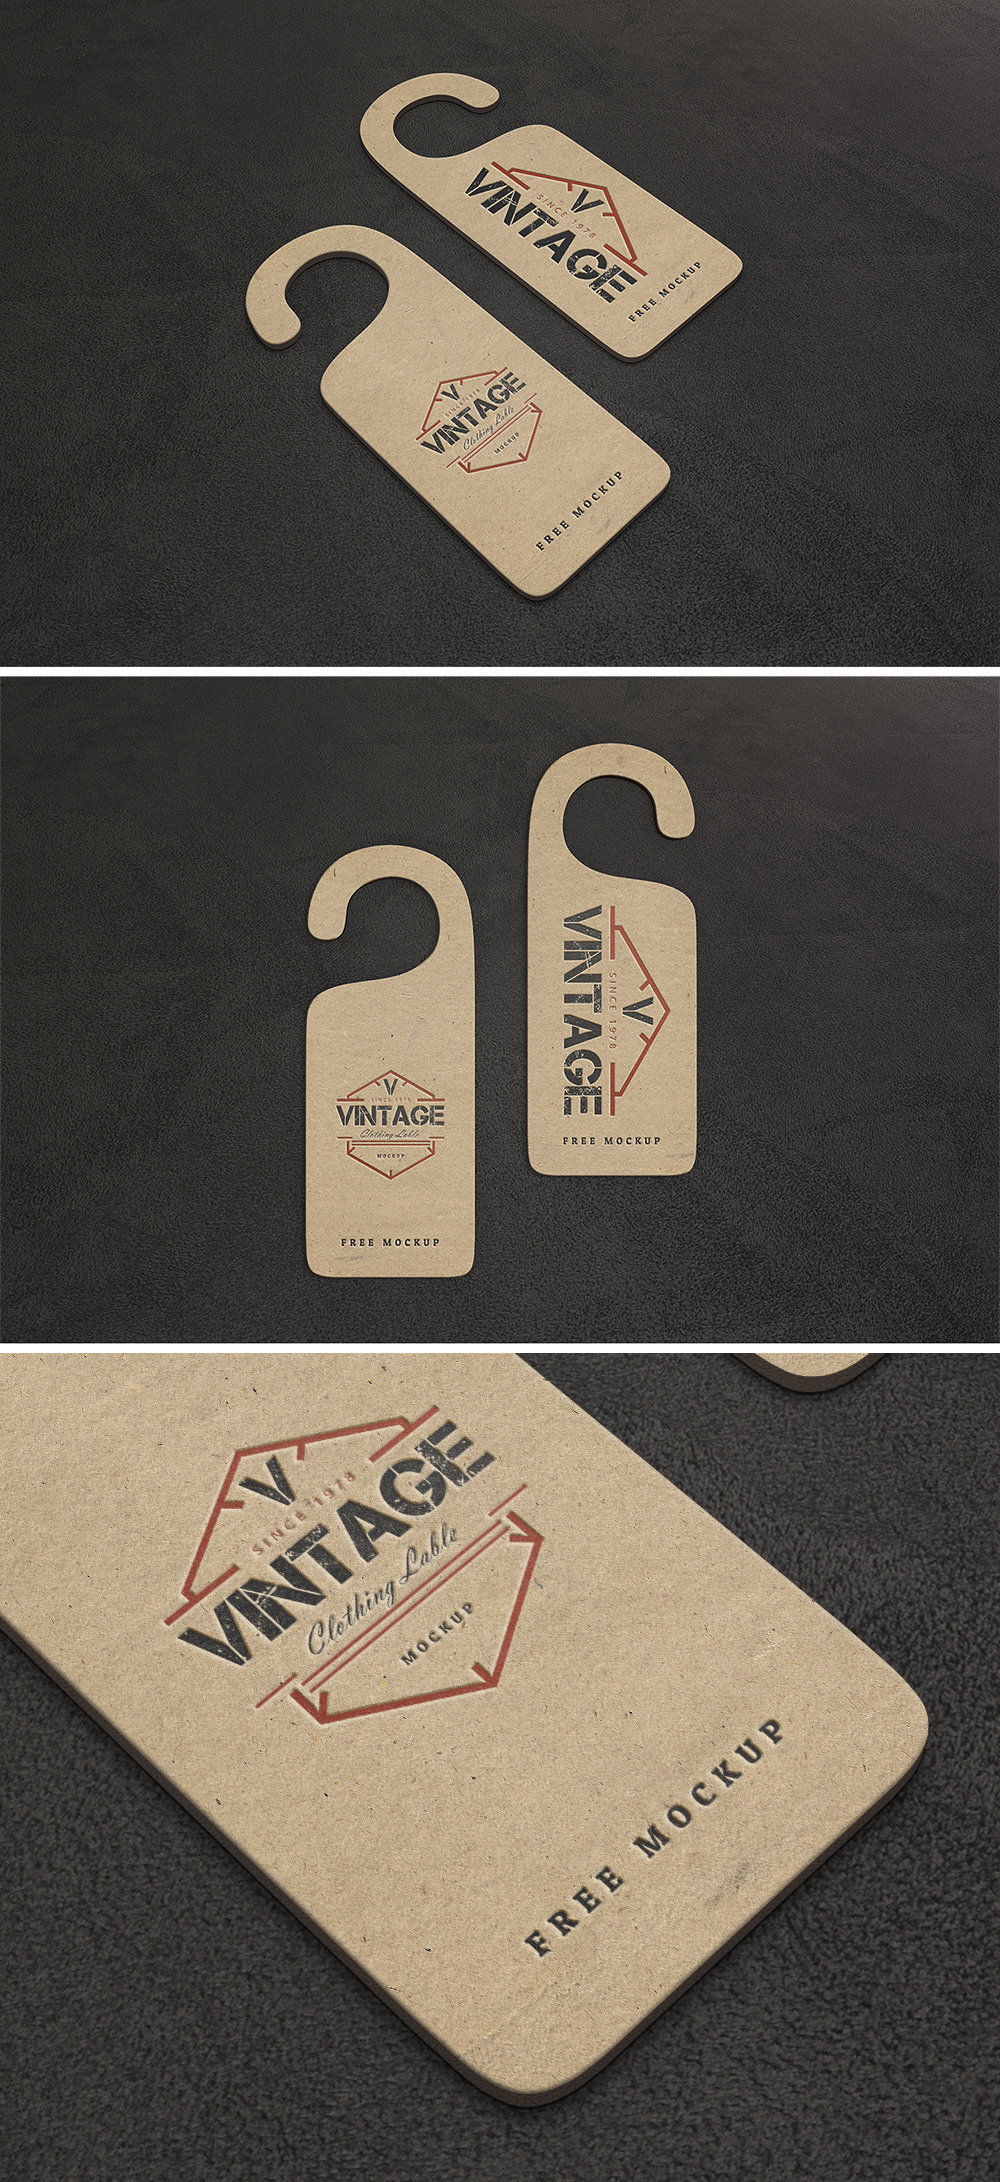 free,mockups,Mockup,design,graphic,pixel,freebie,psd,download,realistic,vintage,tag,Label,Clothing,shop